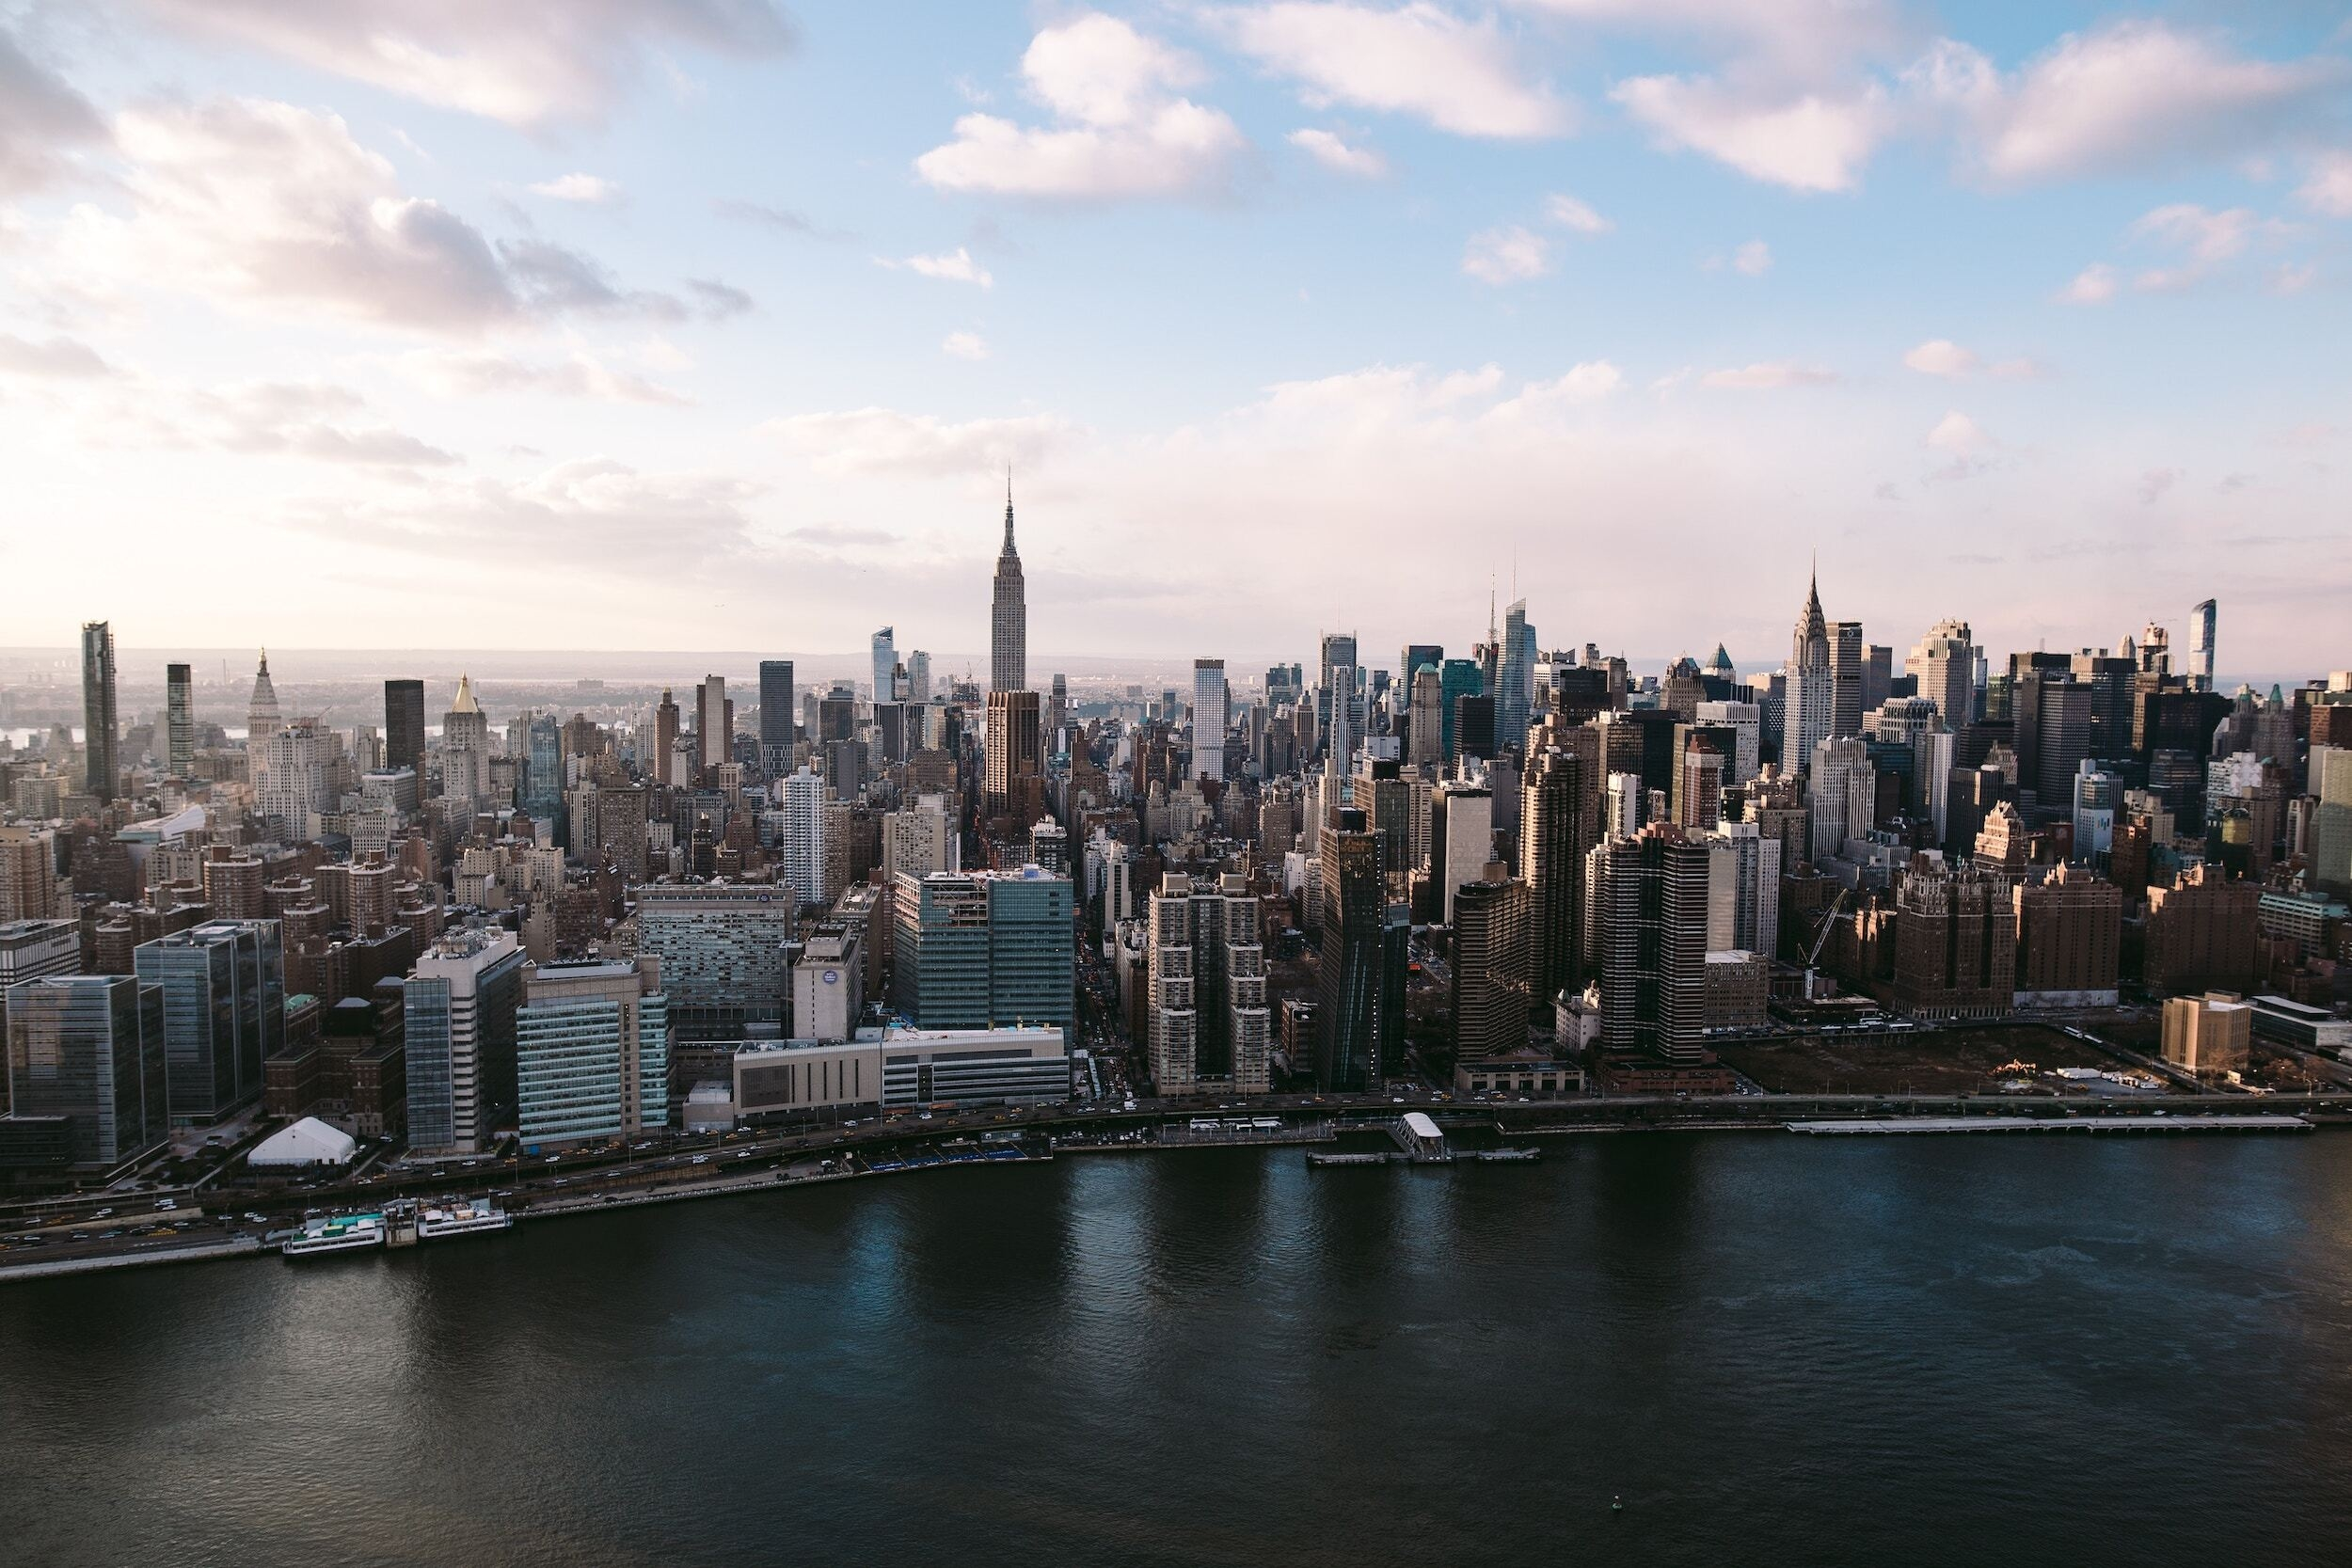 Aerial view of Manhattan skyline with river in foreground